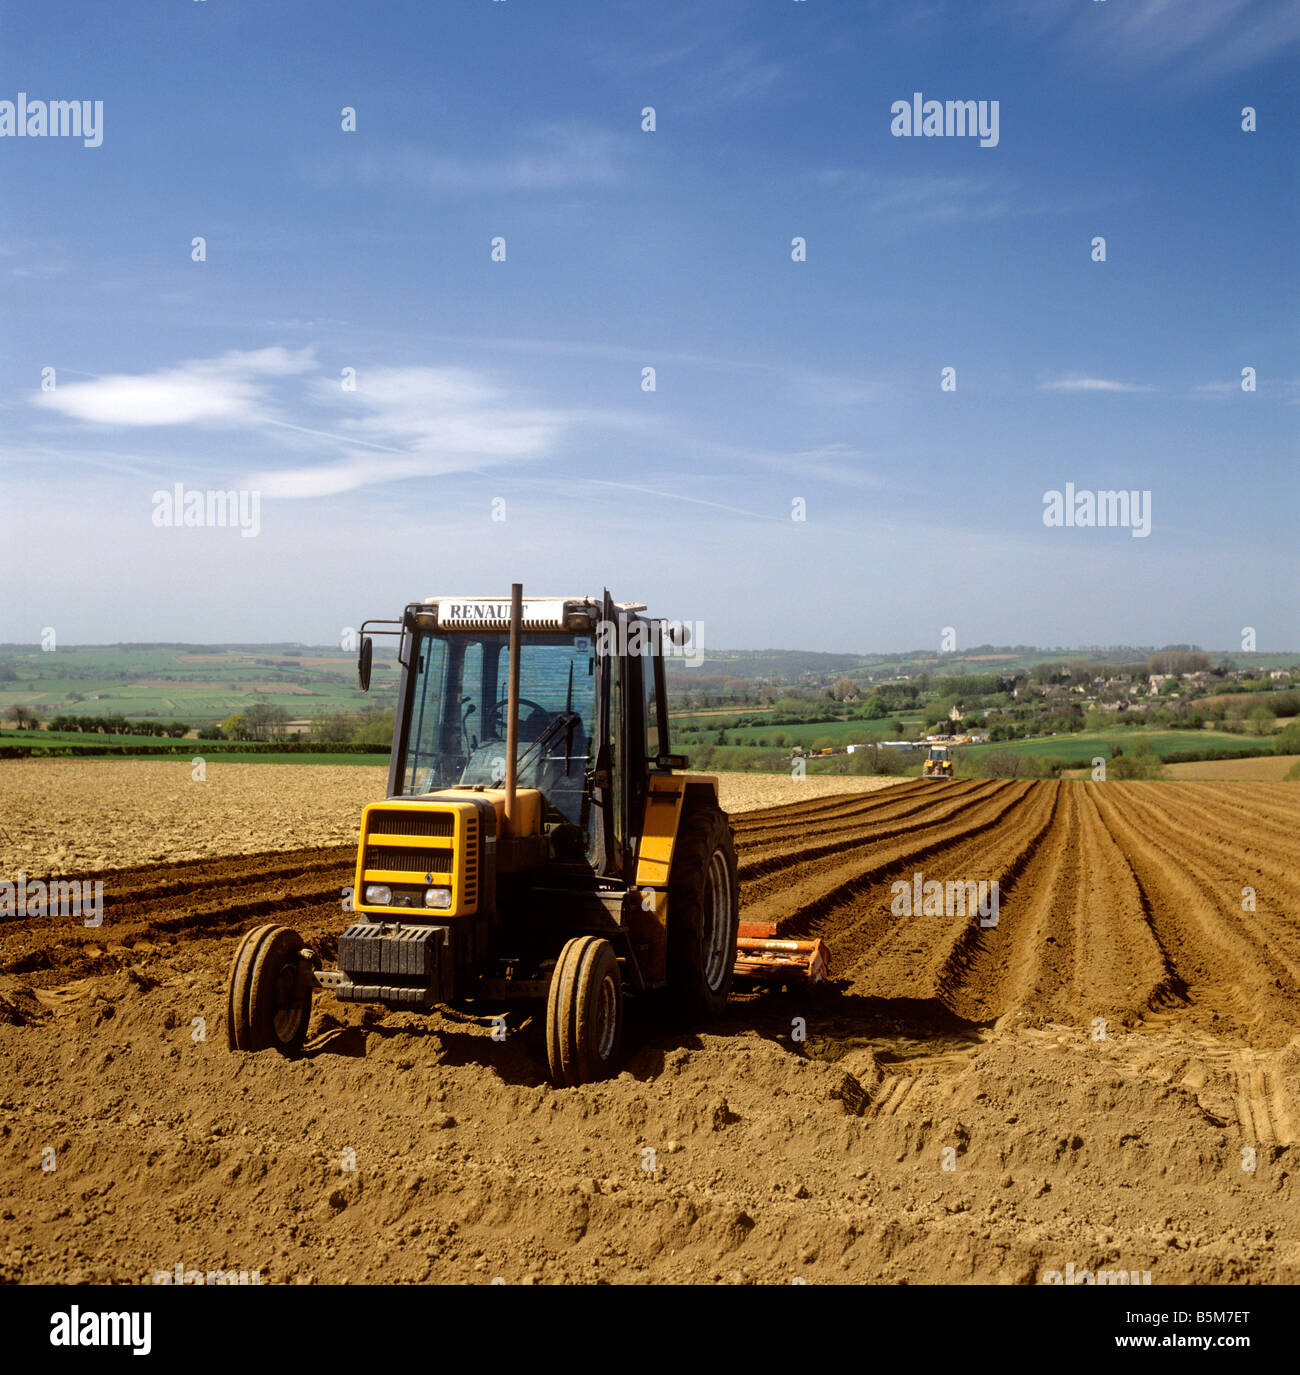 UK England Gloucestershire agriculture Renault tractor preparing field for planting in West Cotswolds - Stock Image